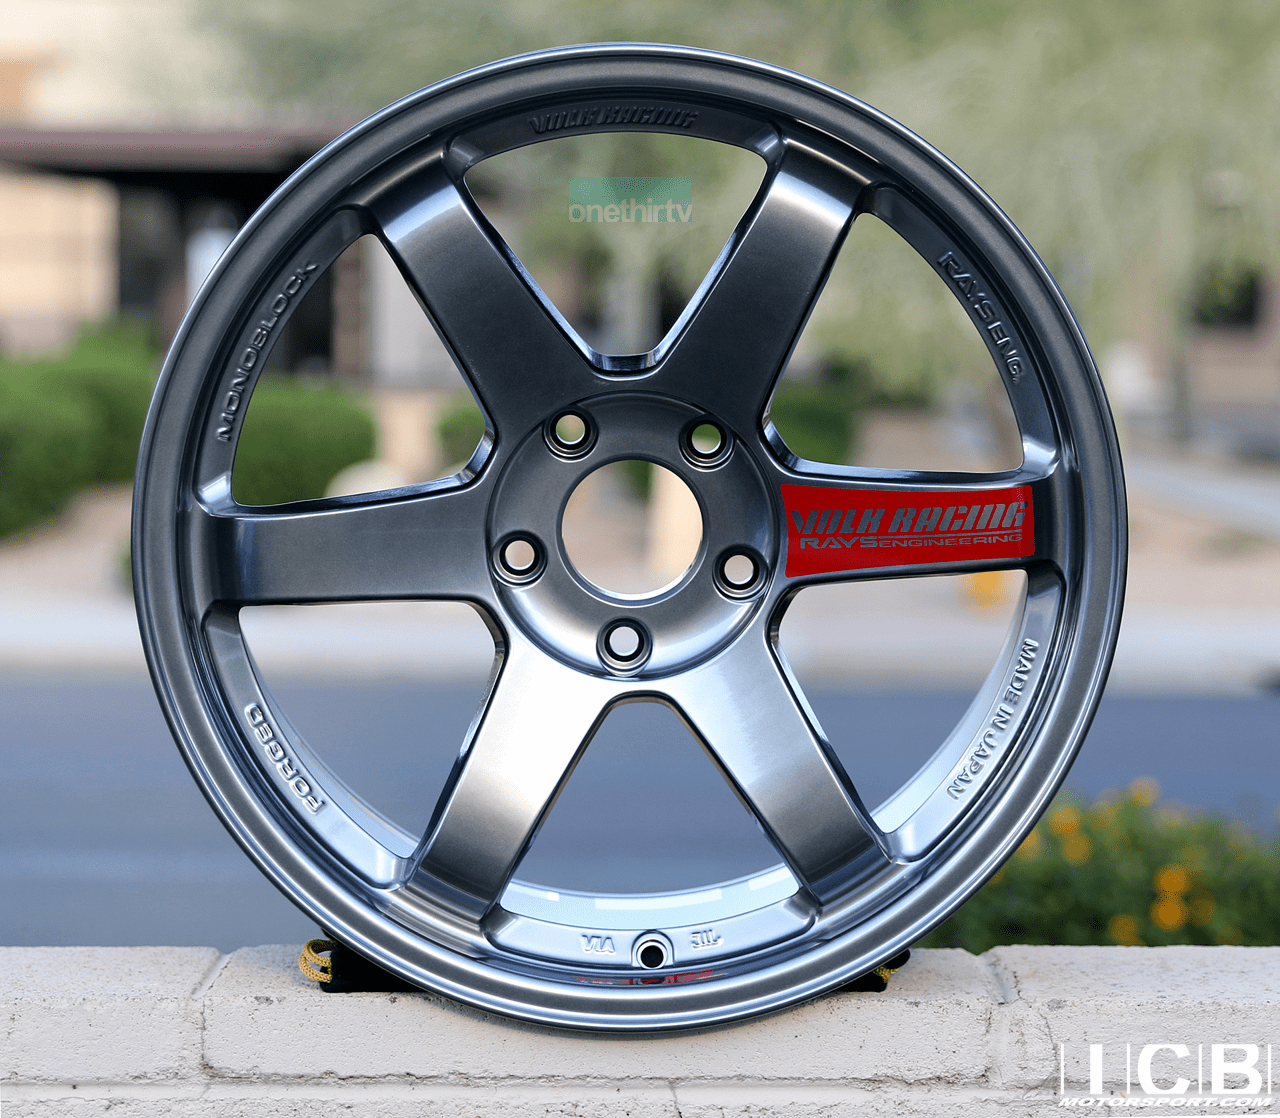 Rays Volk Racing TE37SL Mercury Silver Wheels 18X9.5 +38 Offset 5X120 Concave Face Civic FK8 CTR